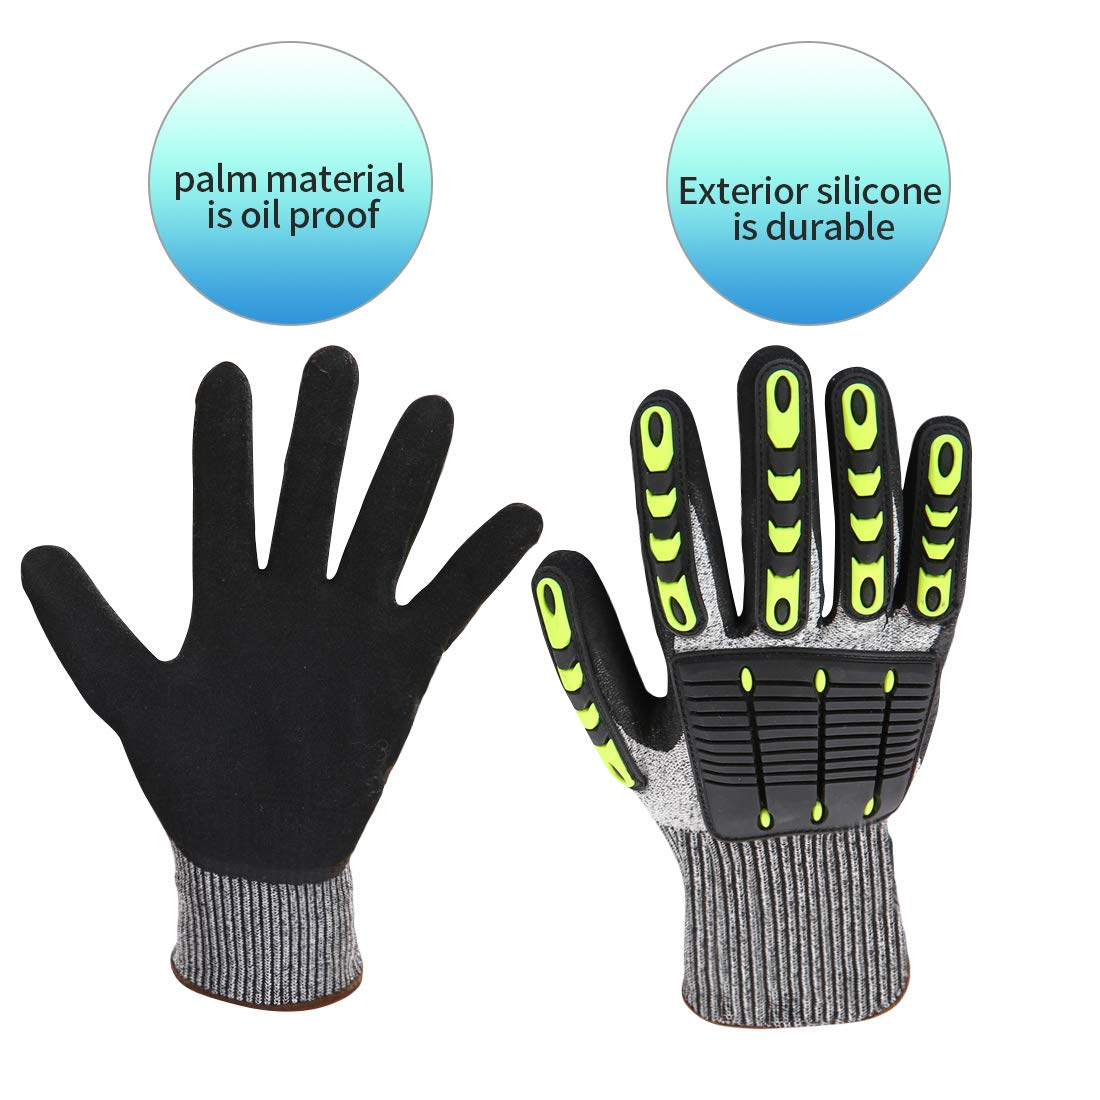 Impact Reducing Safety Gloves, Vibration & Abrasion & Cut Resistant, Ideal for Heavy Duty Safety Work like Mechanic, Garden Construction, Car Repairing Industrial, 1 Pair by KARRISM 3